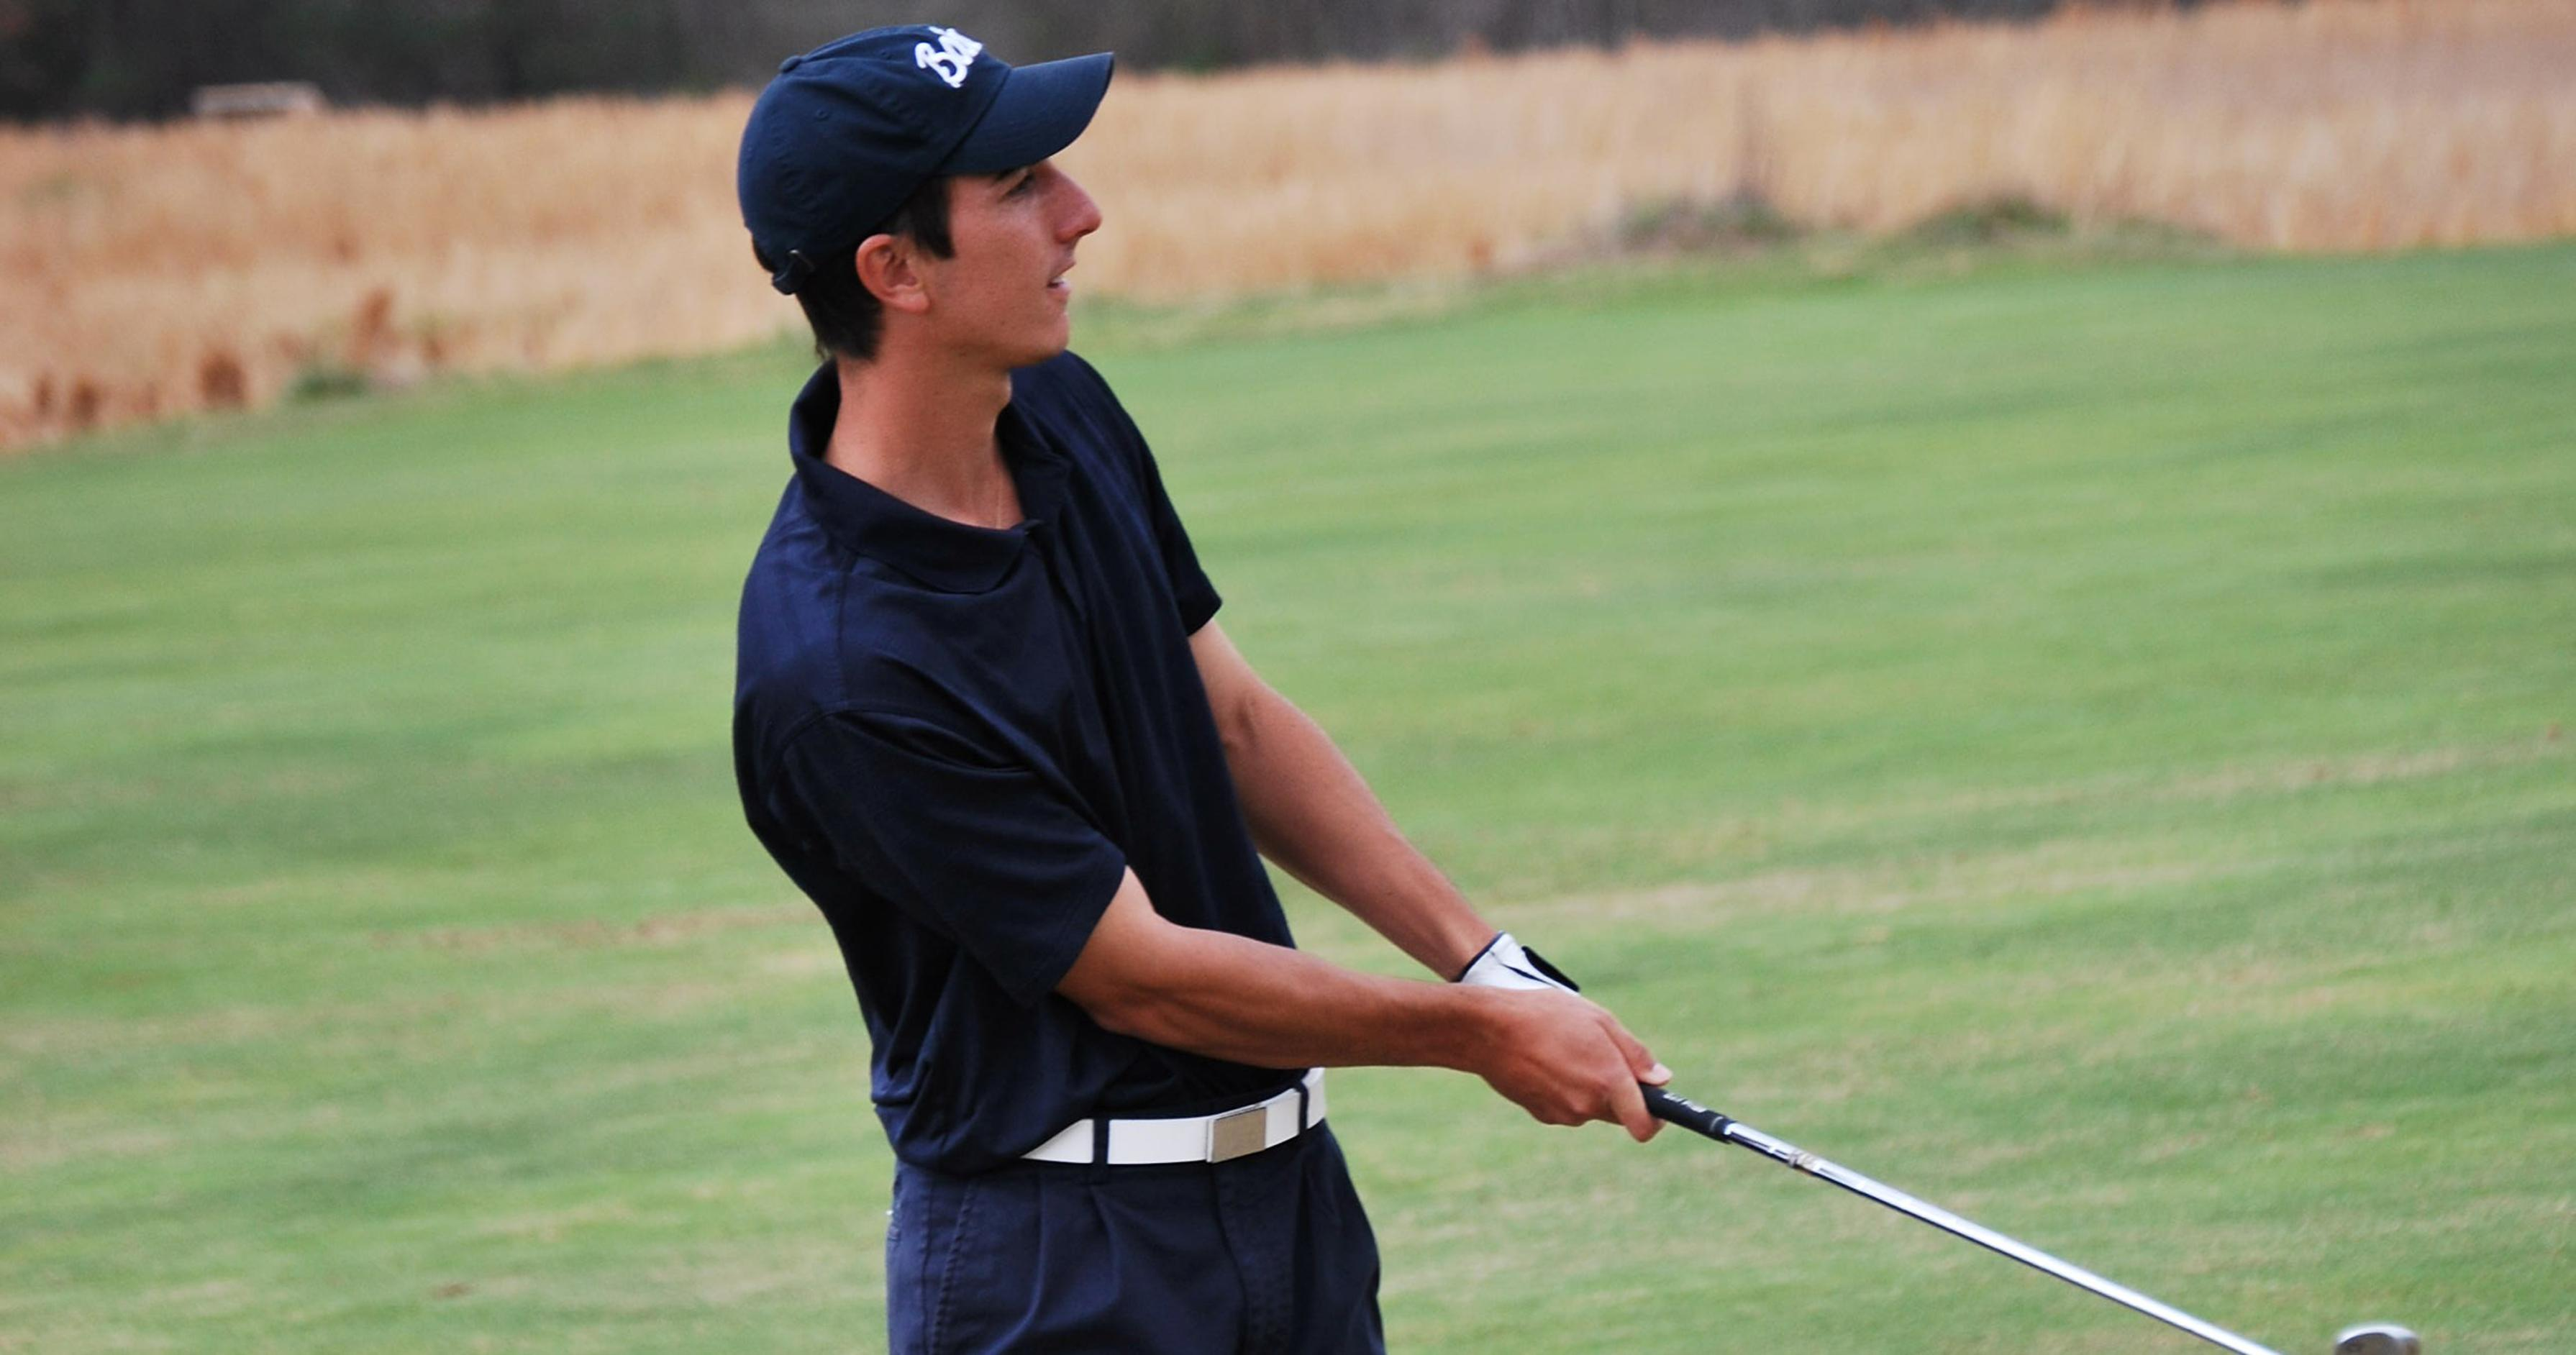 #2 Bobcat Golf Bags Sixth at Mizuno Savannah Intercollegiate